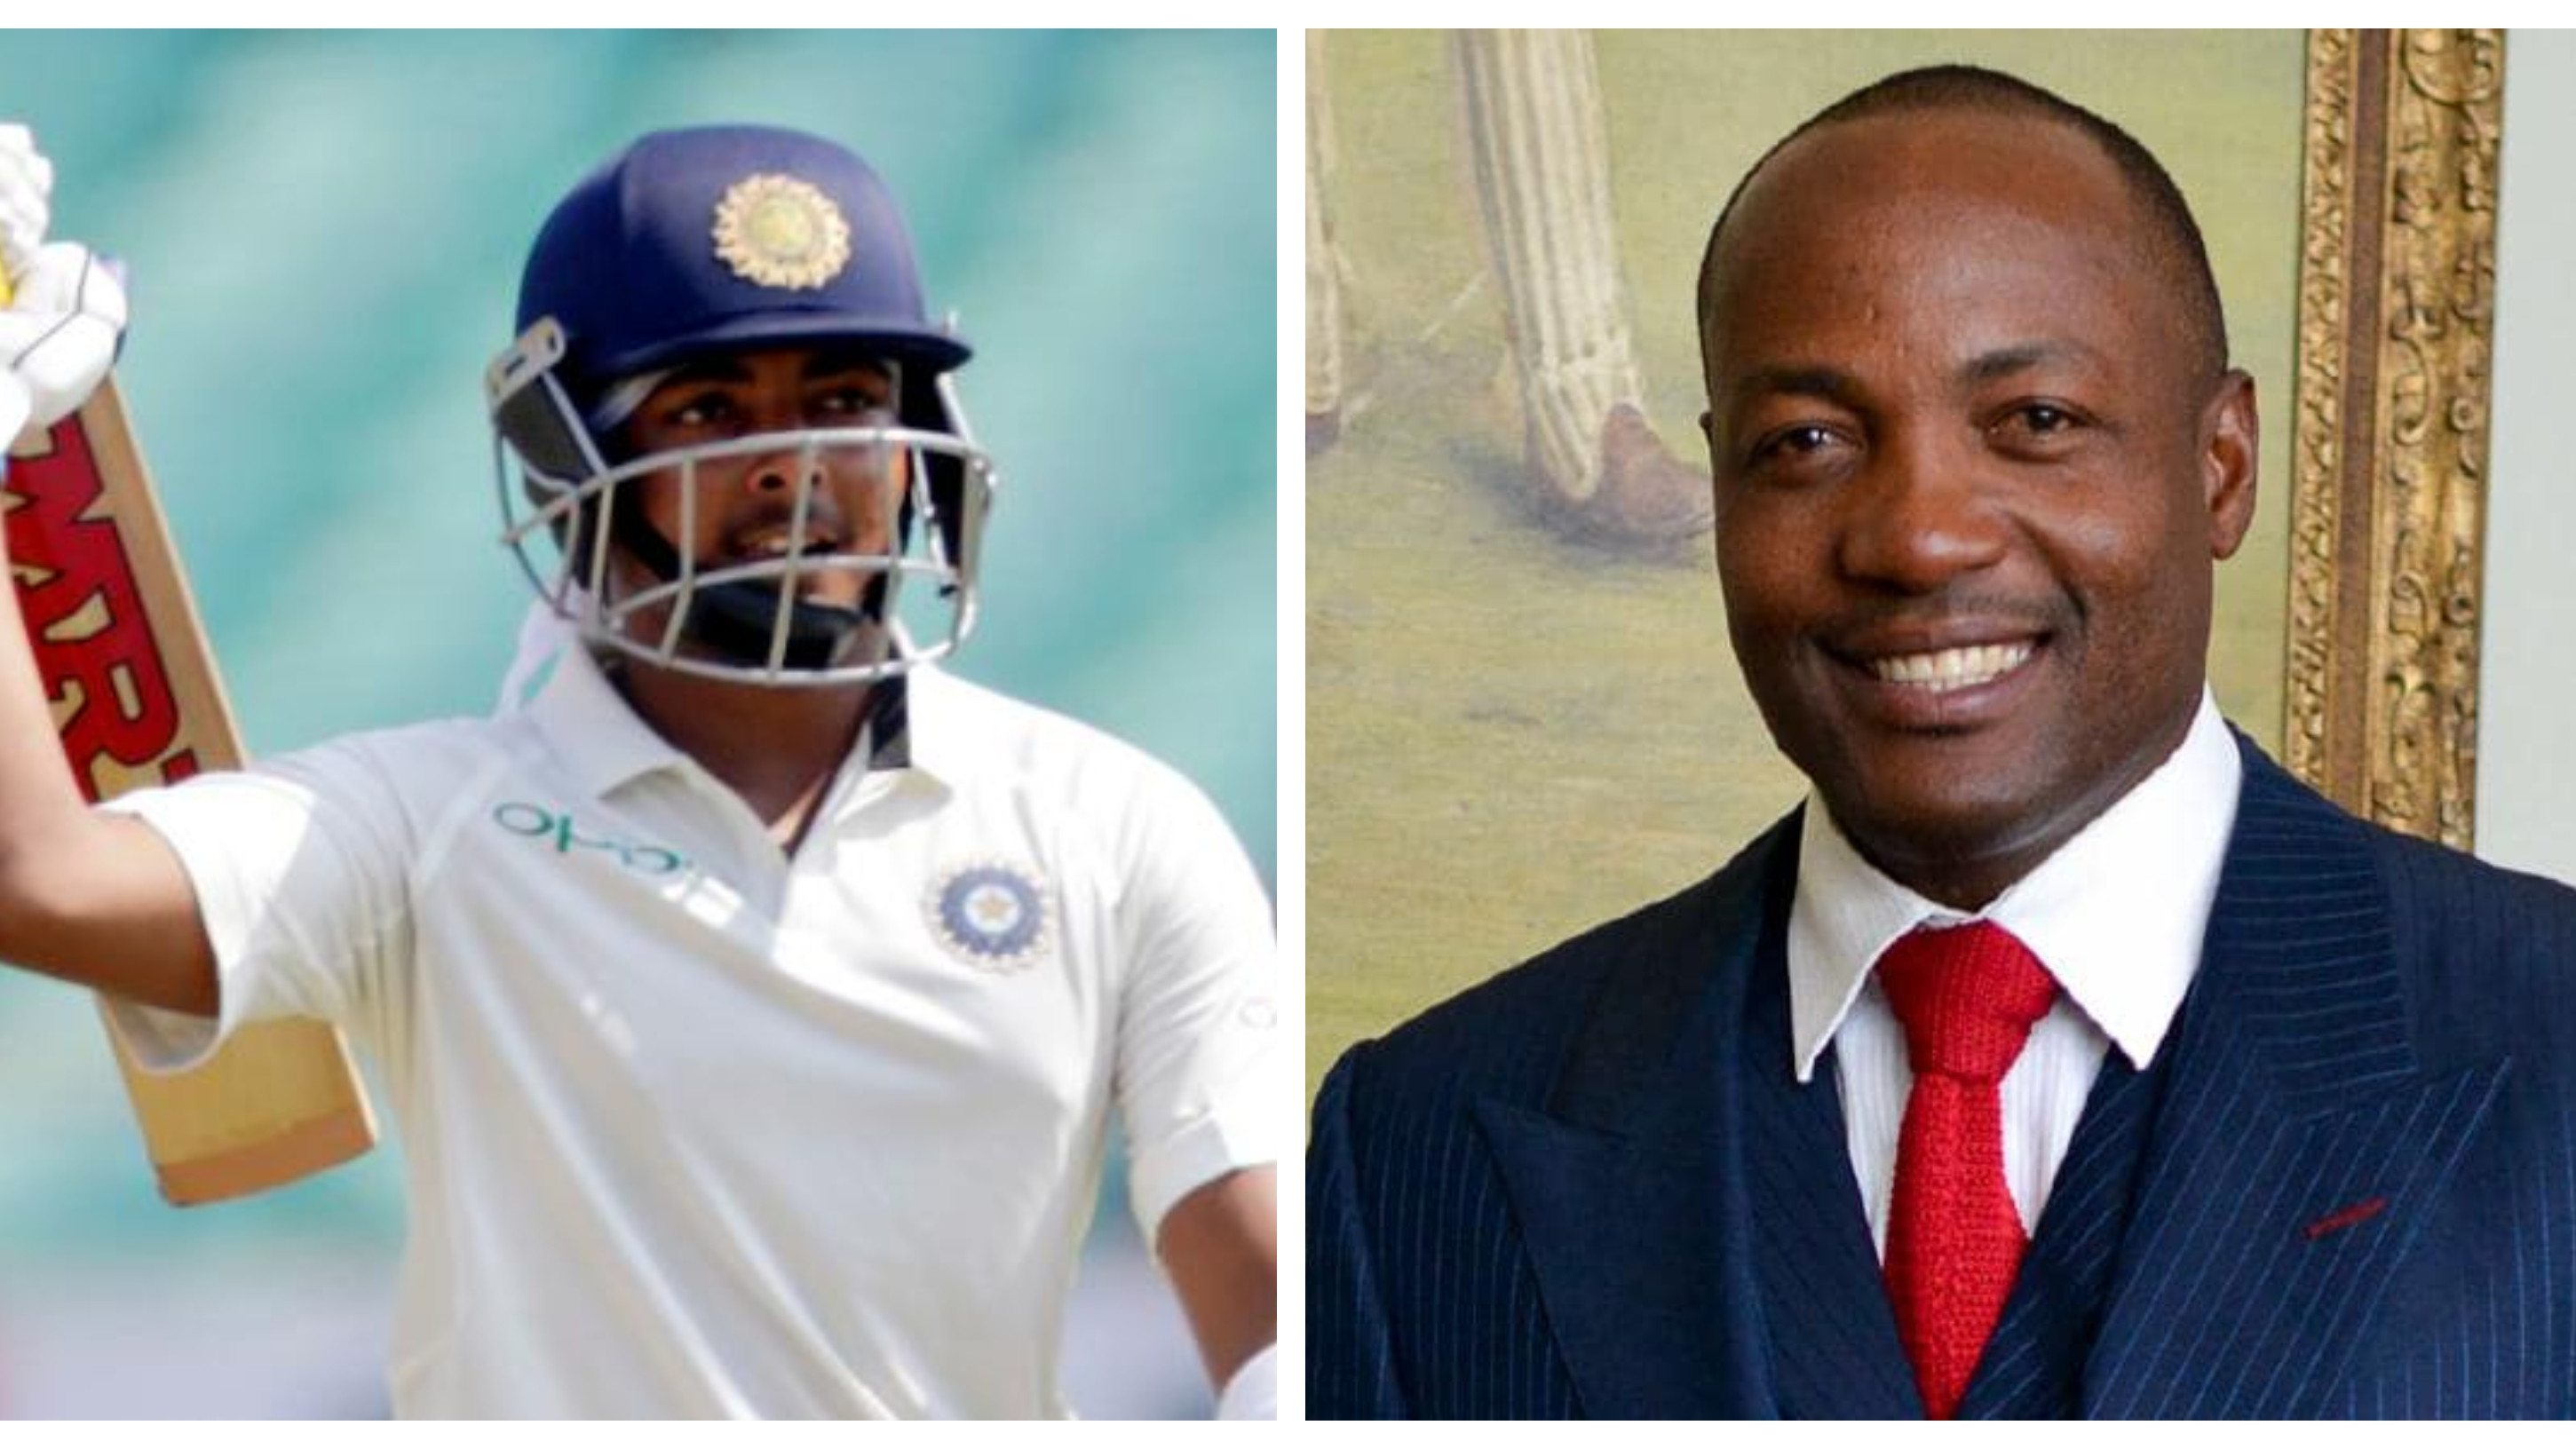 Prithvi Shaw has the mental strength to do well in Australia, says Brian Lara